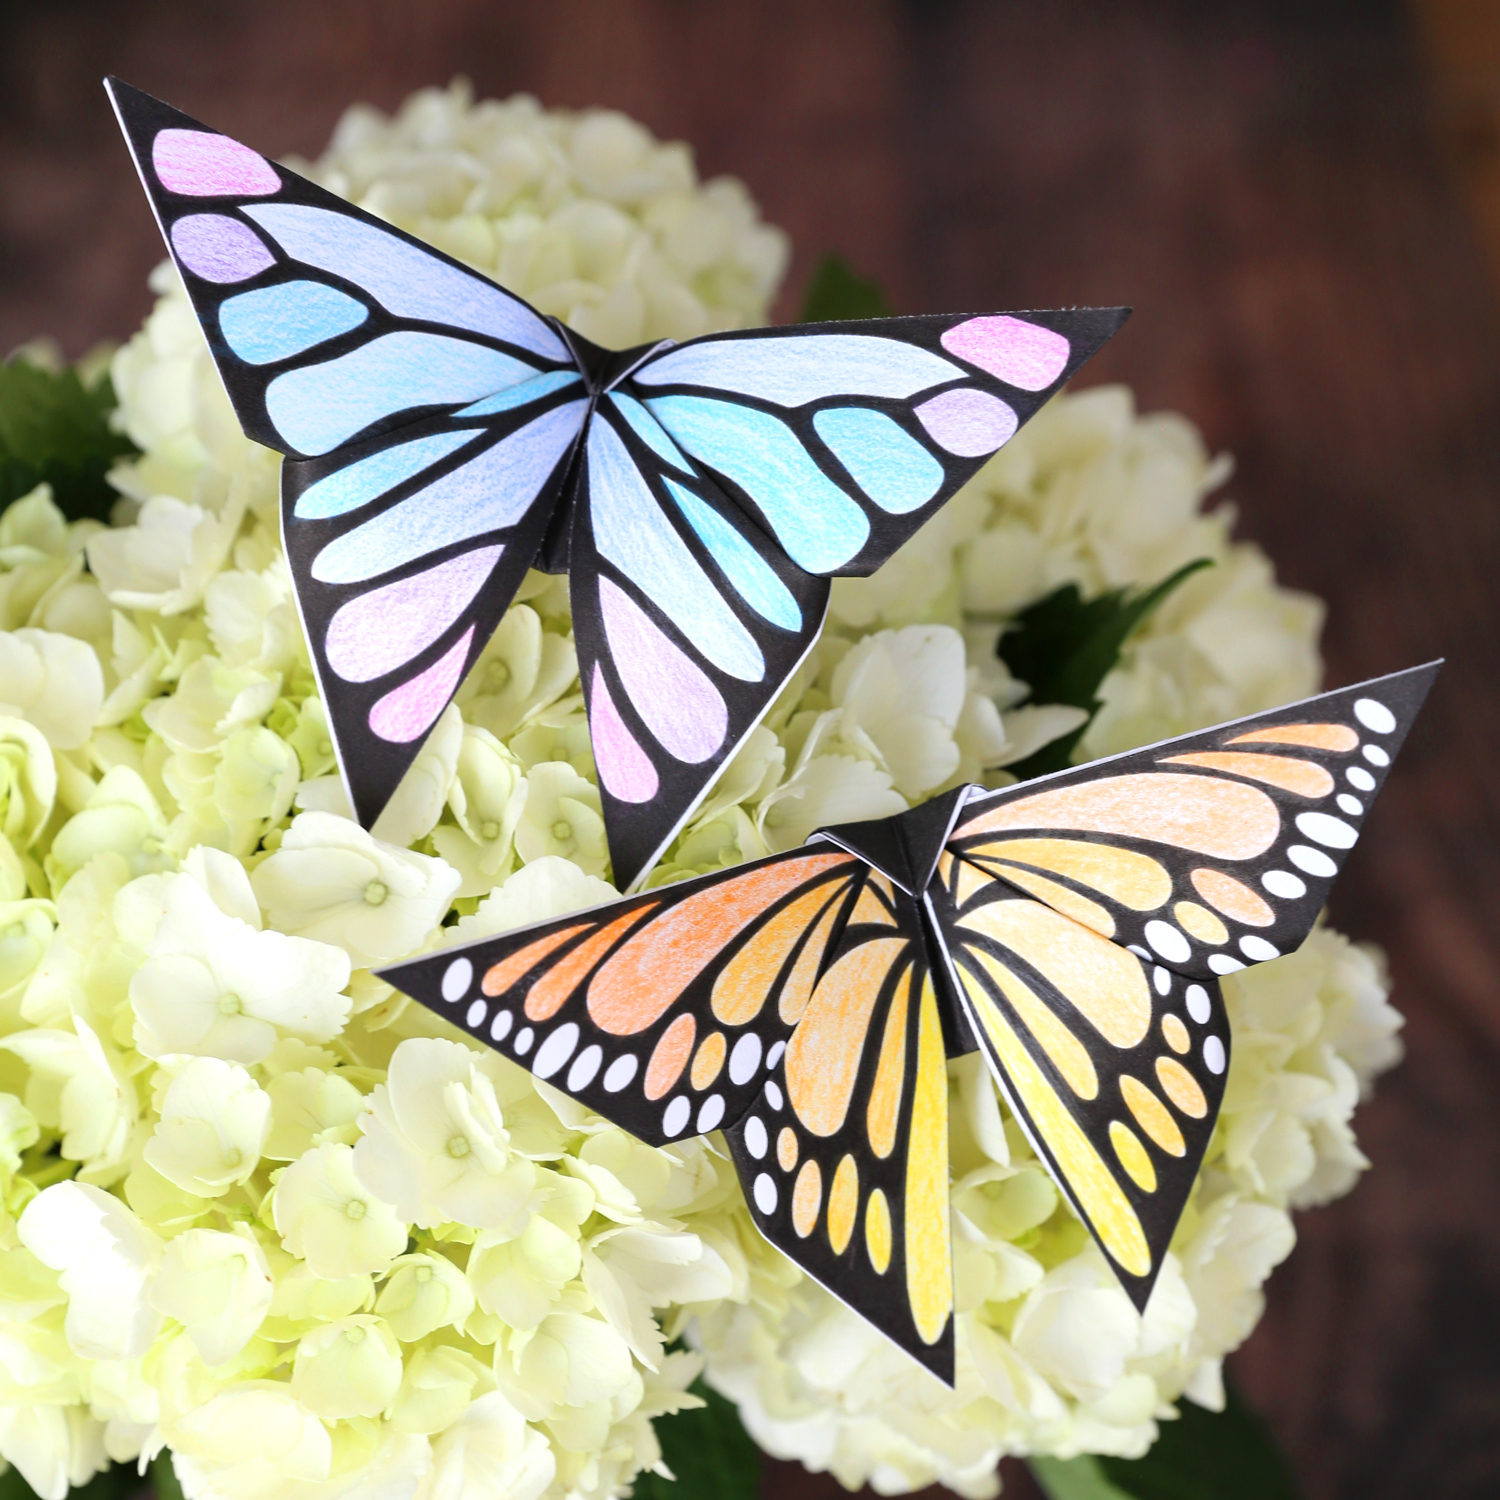 Two origami butterflies on flowers